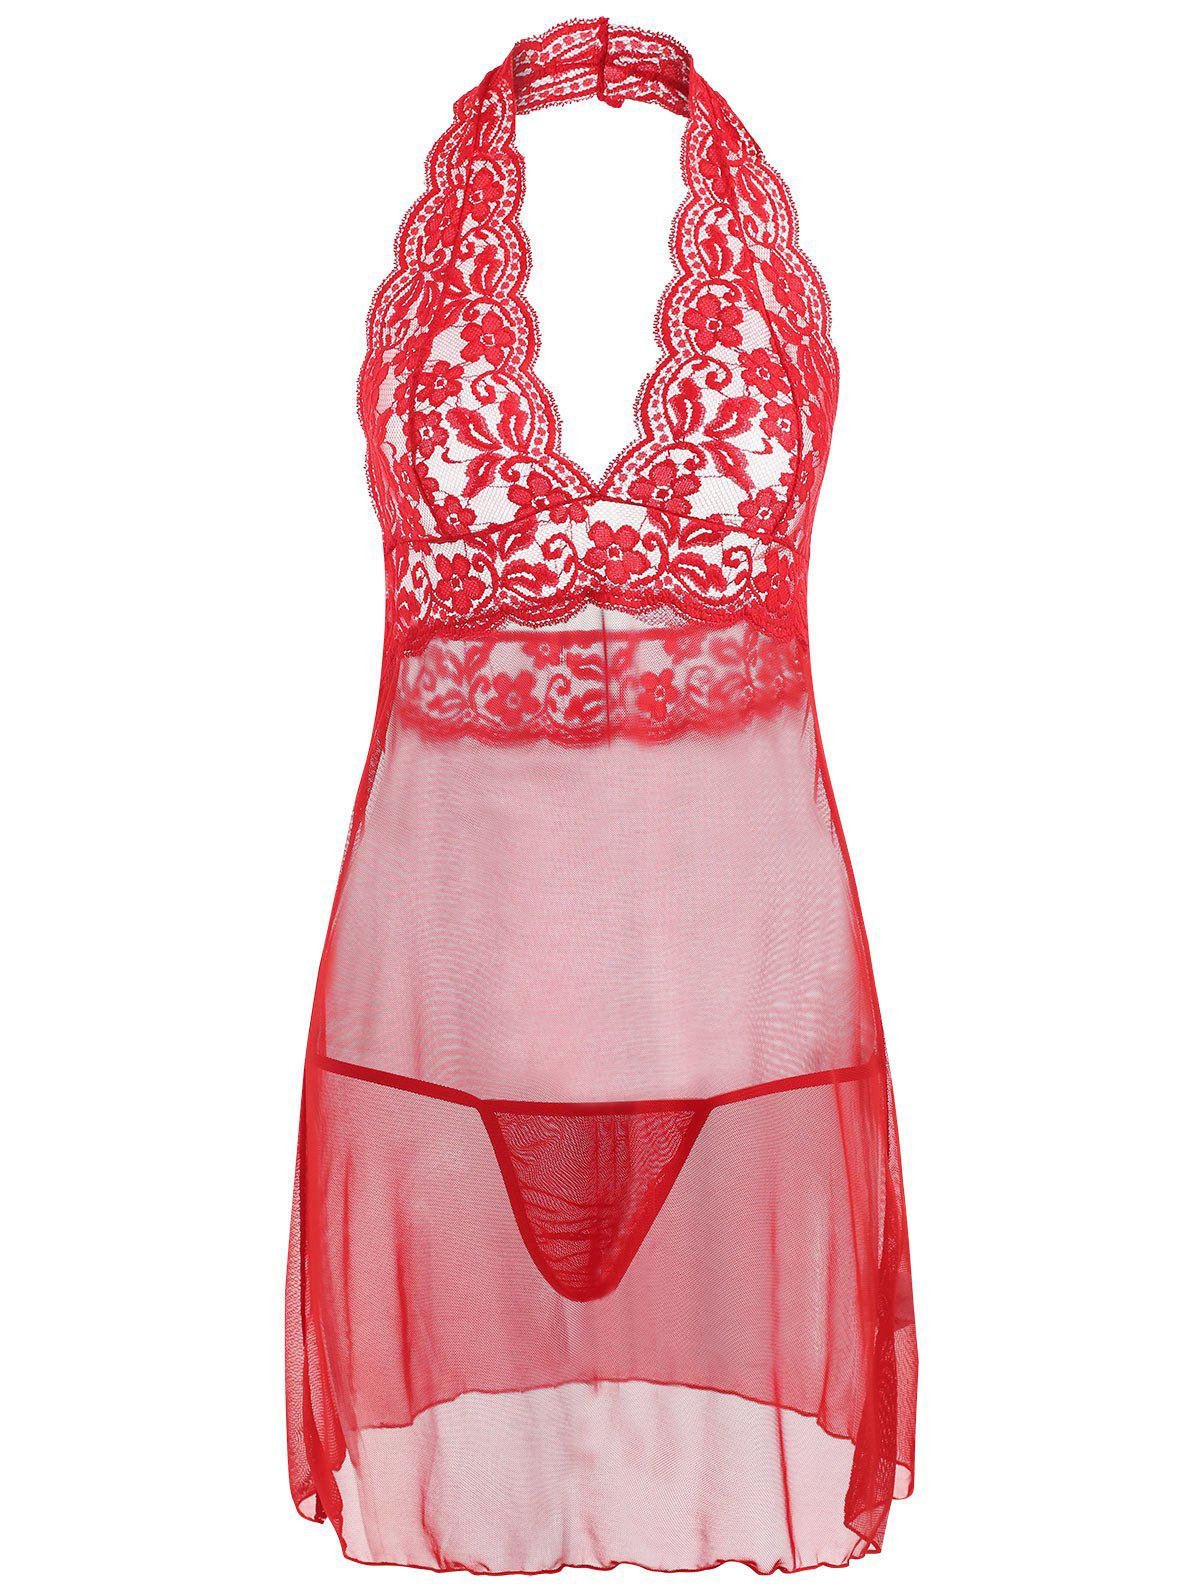 Store Halter Lace Mesh Backless Babydoll